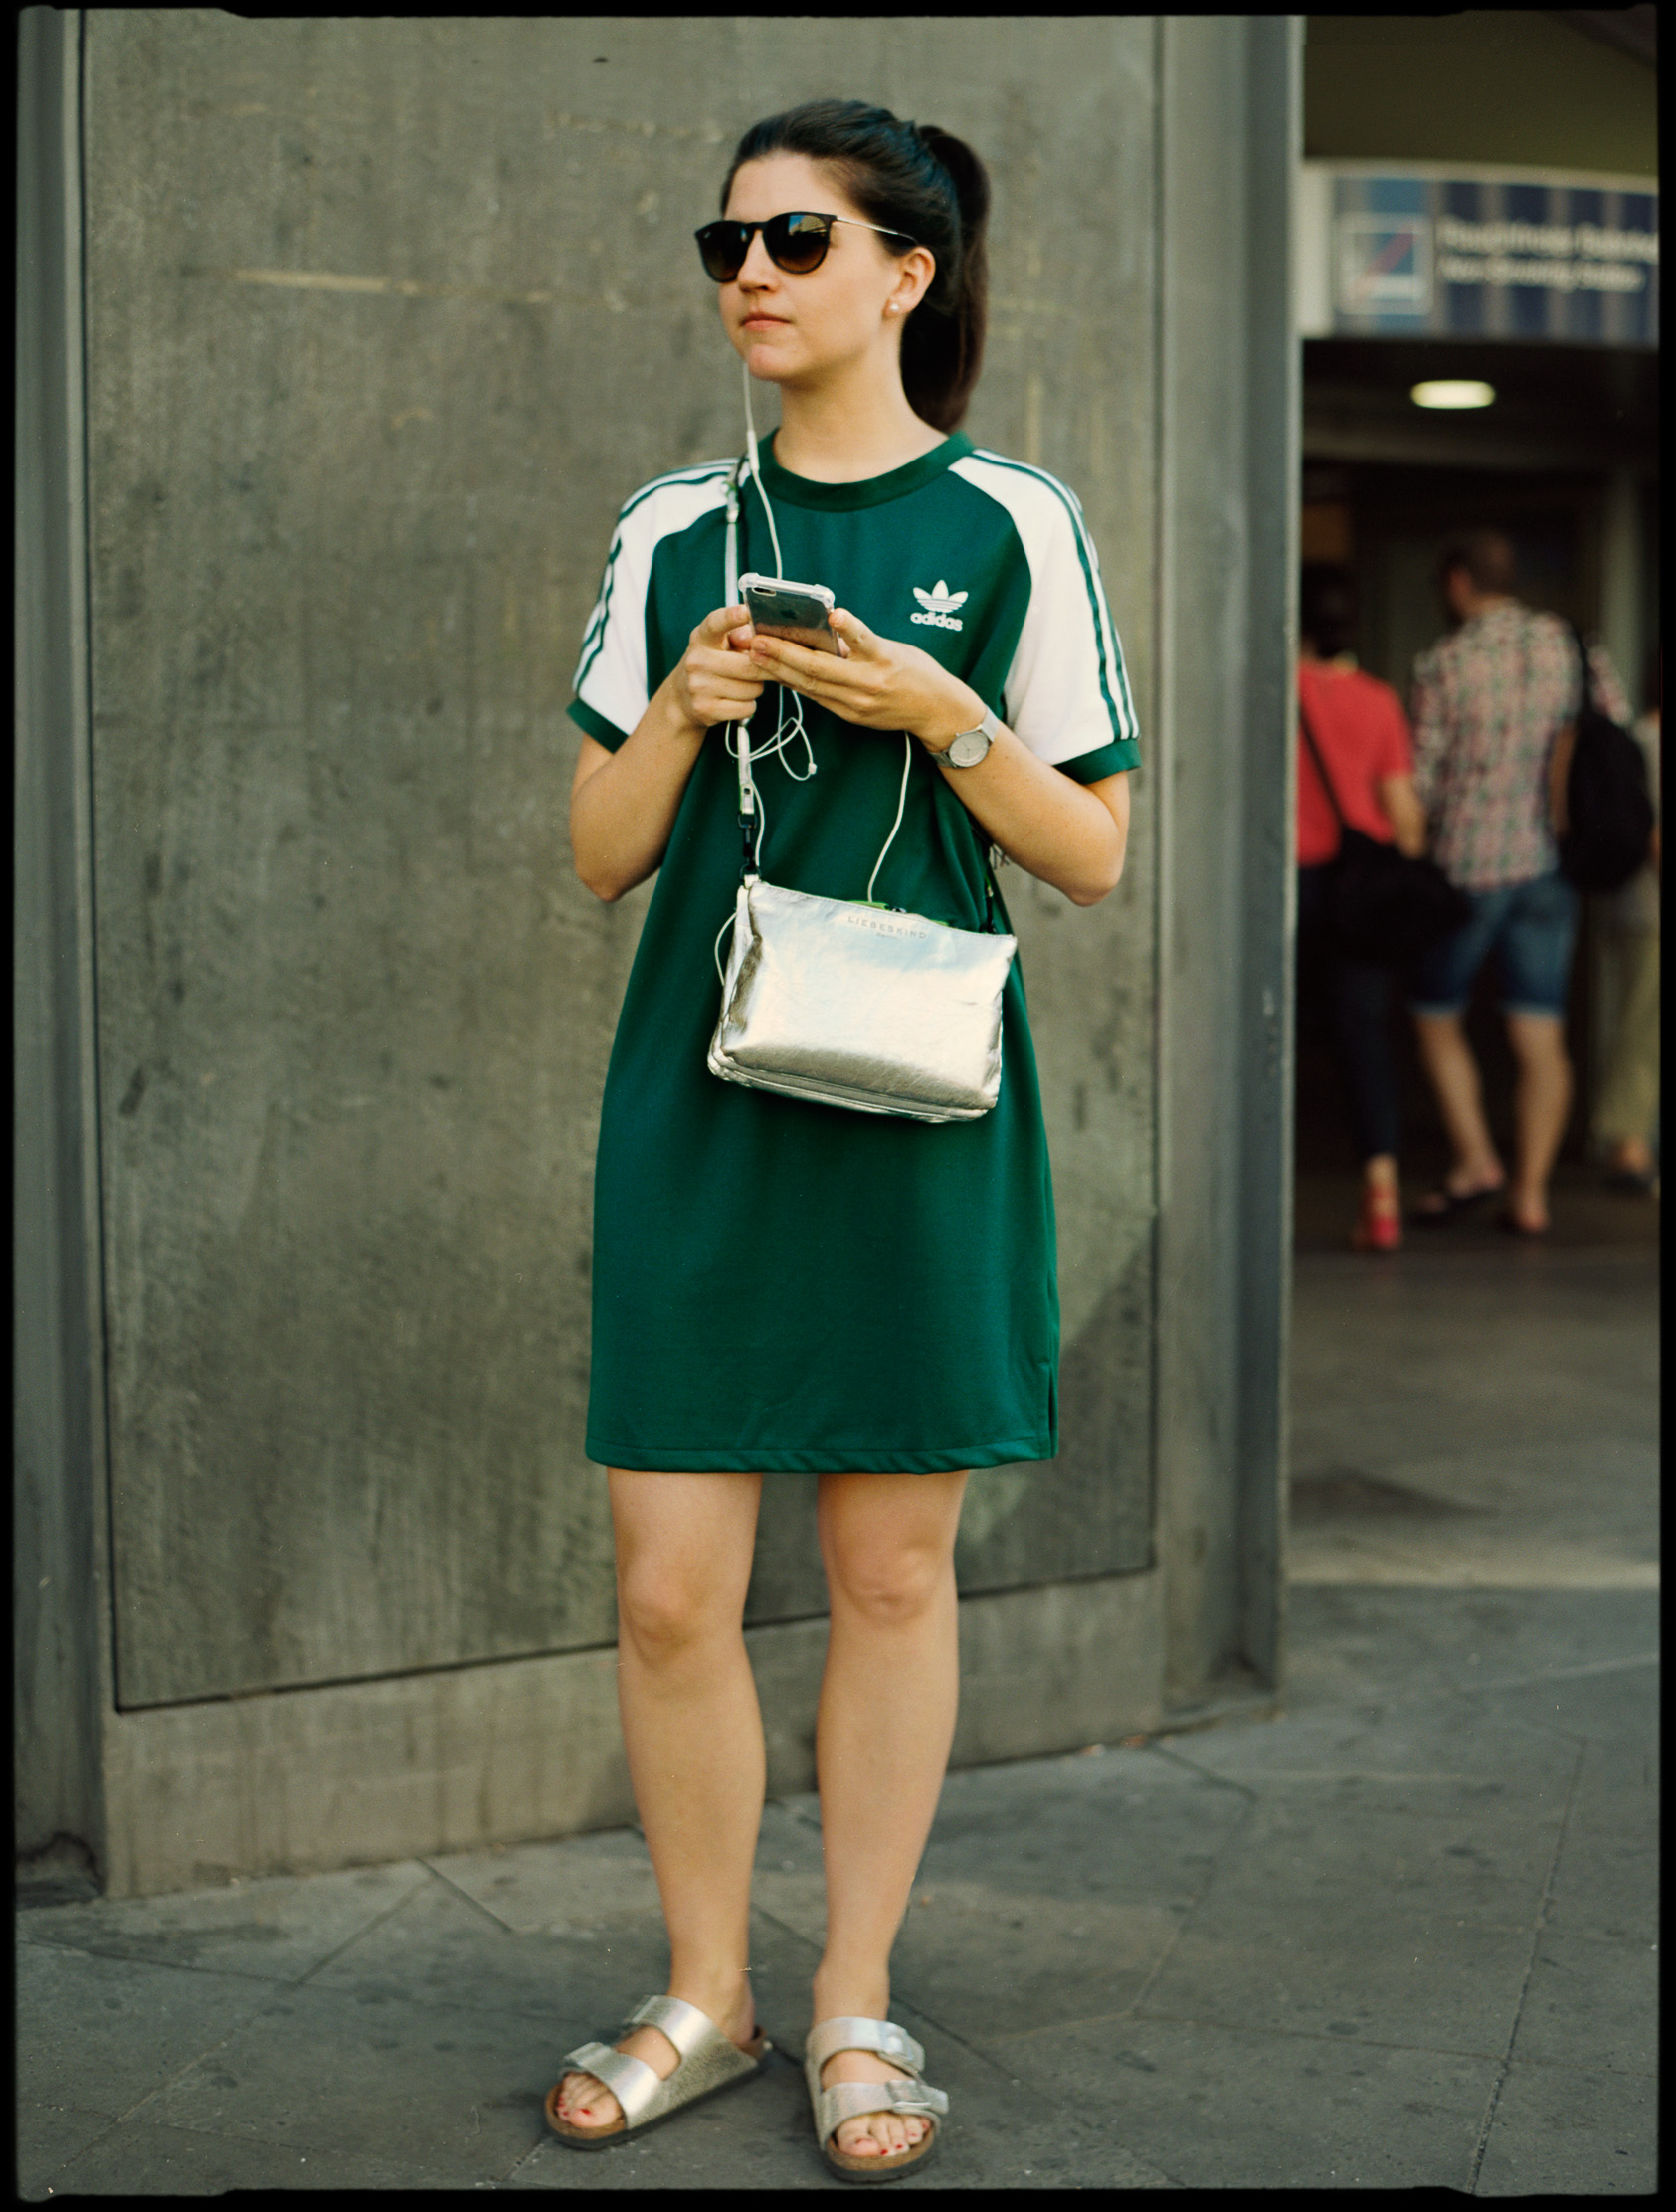 Woman in an adidas dress with a silver bag